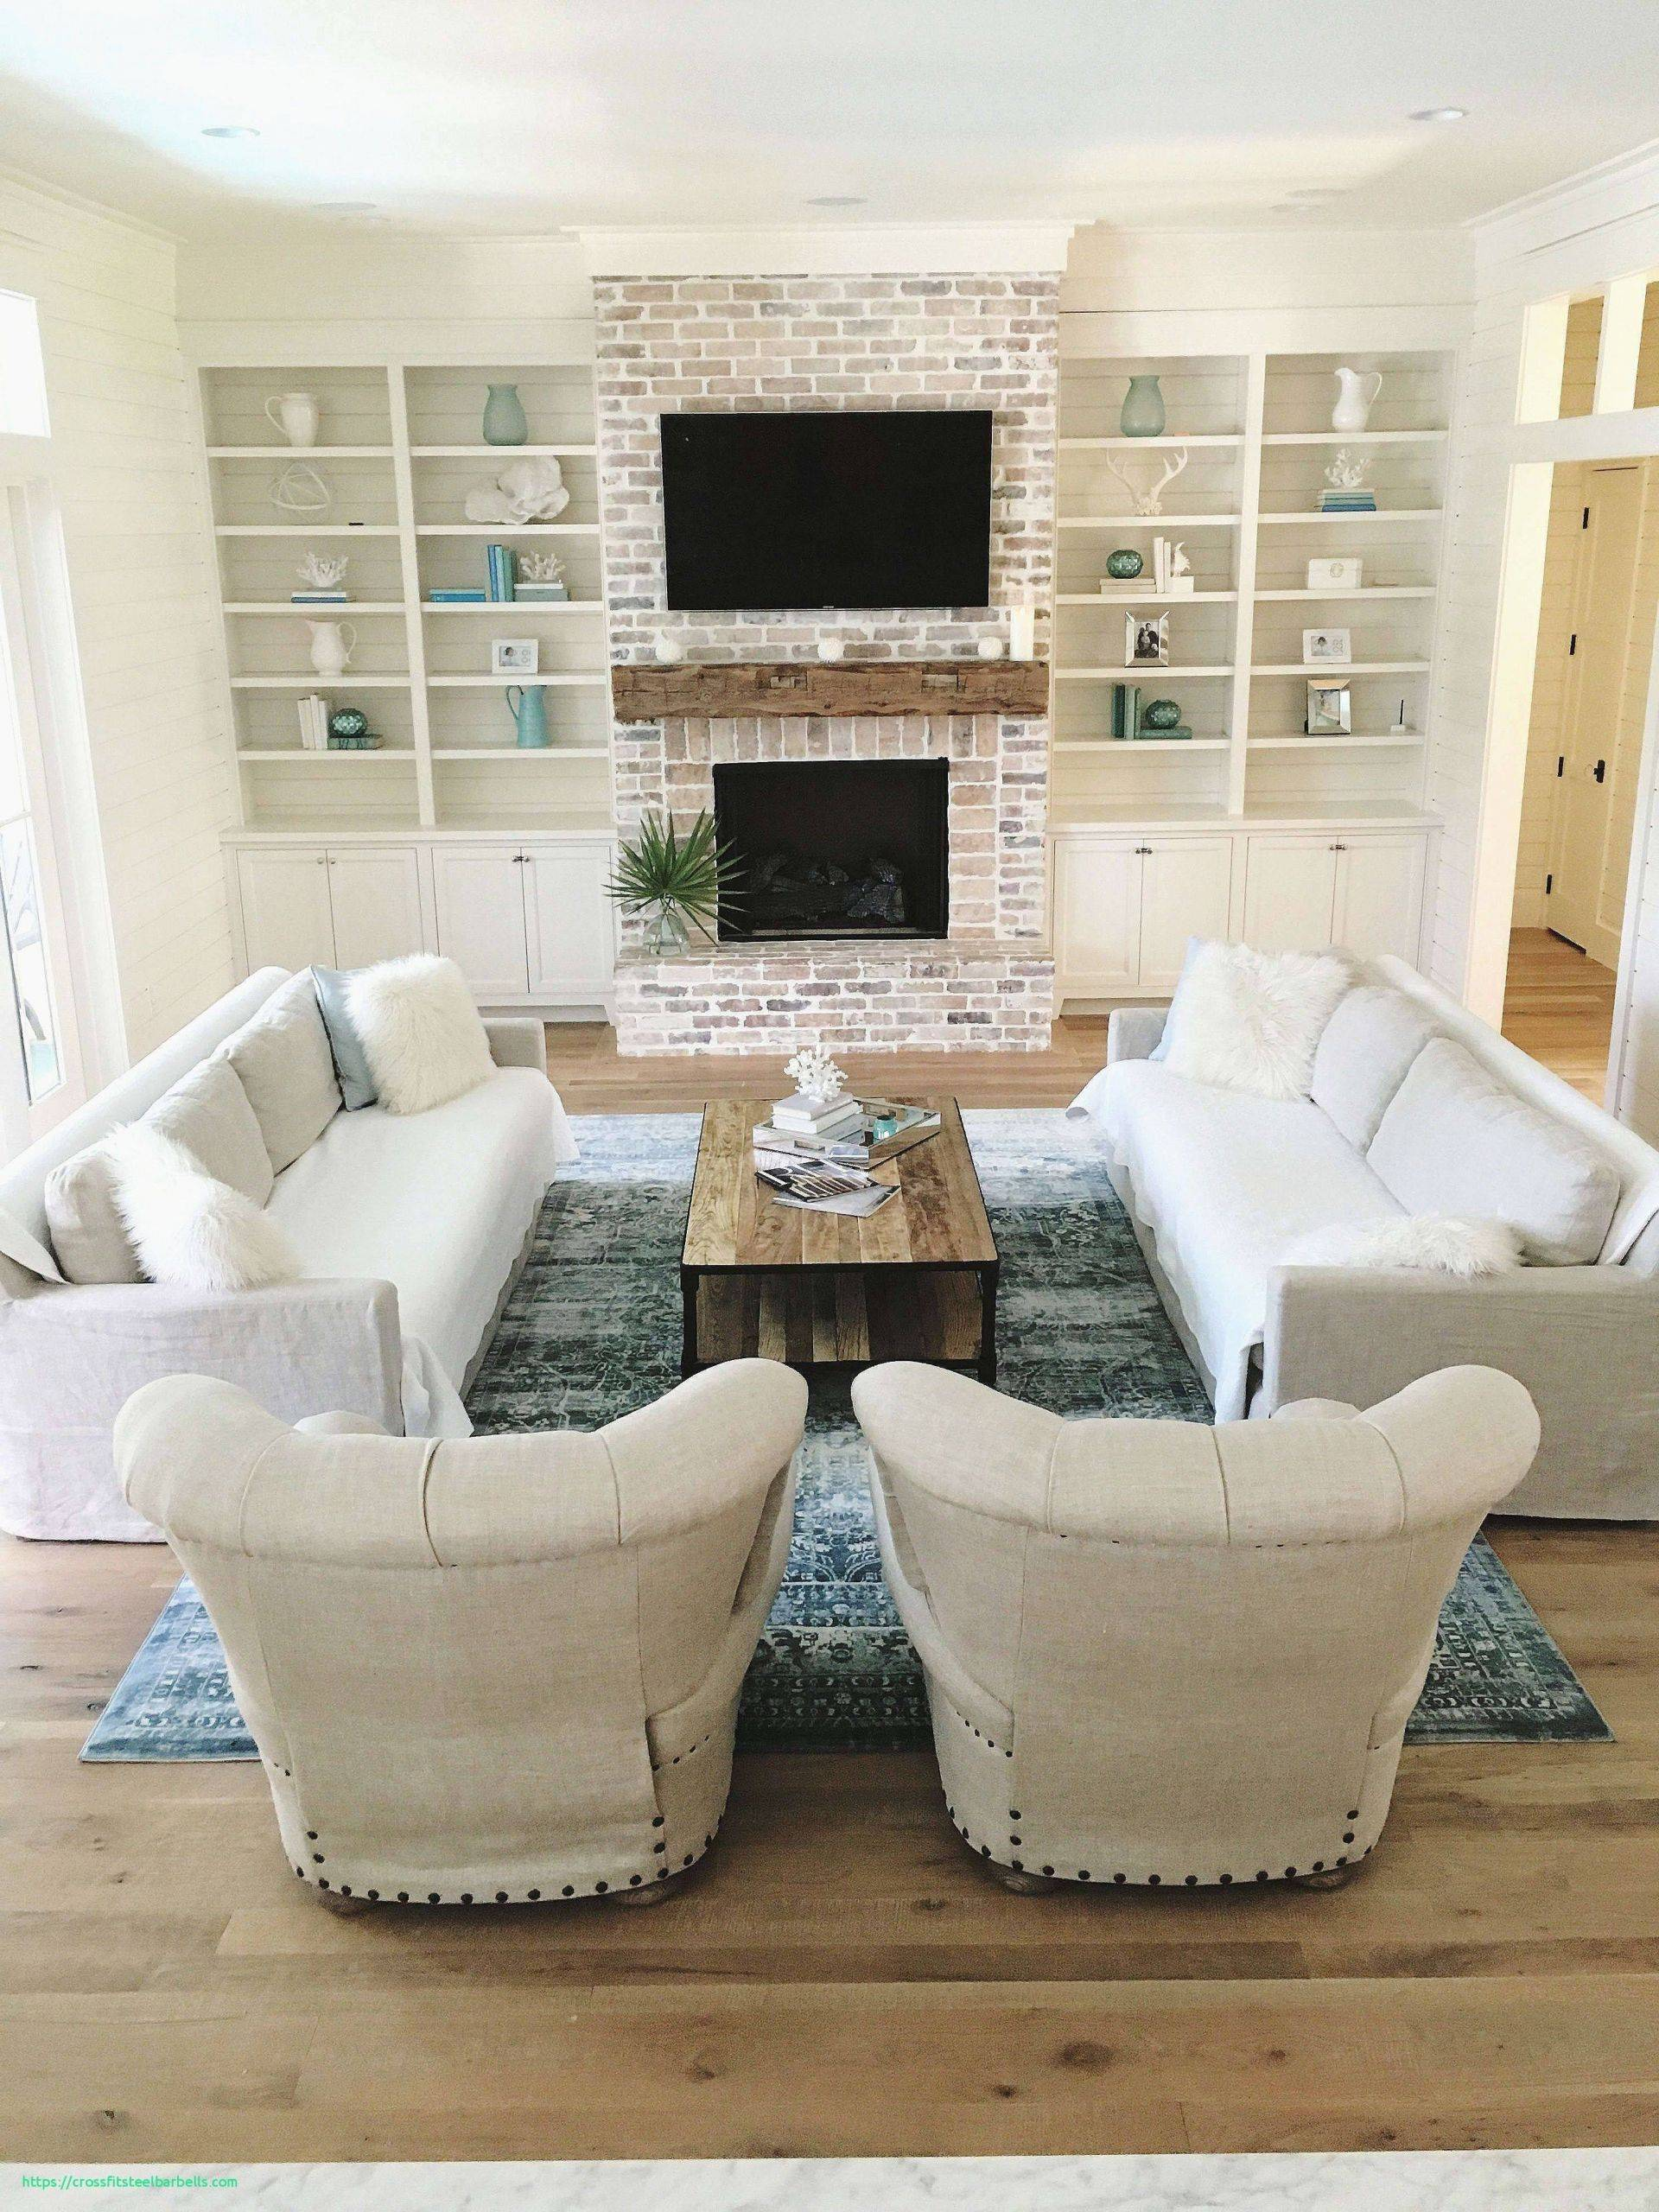 small living room decorating ideas new elegant living room ideas 2019 of small living room decorating ideas scaled